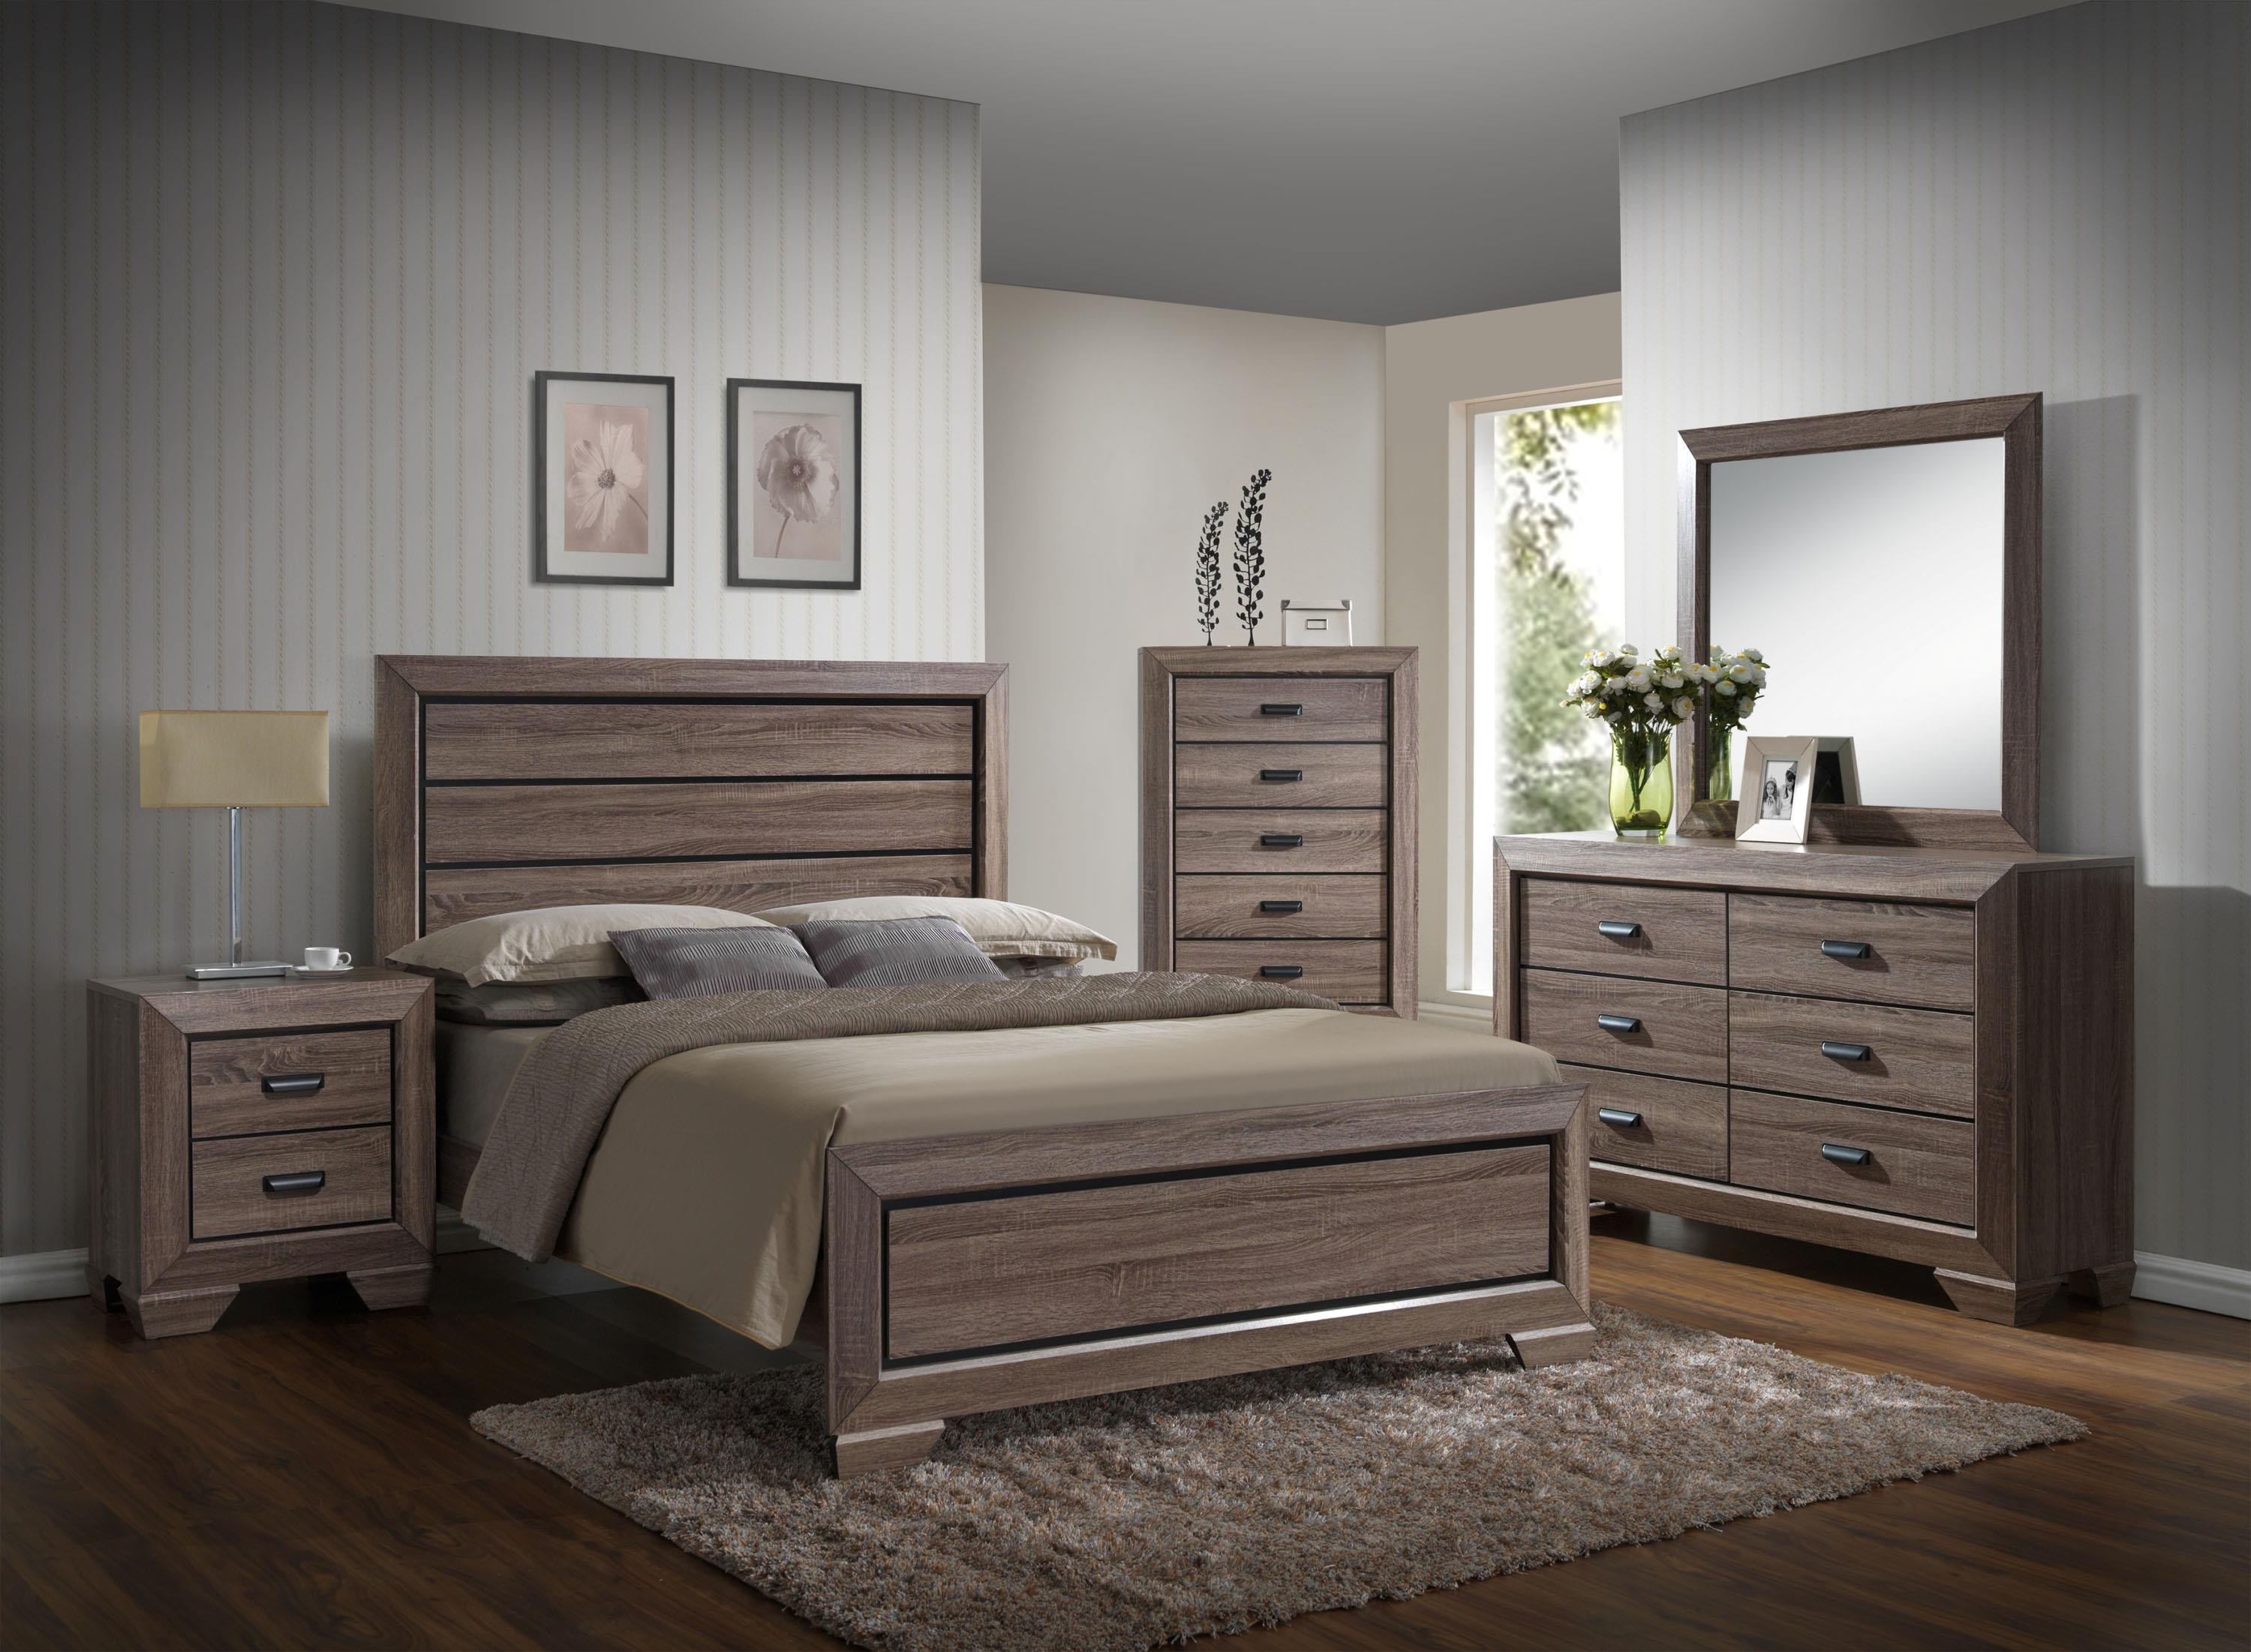 Farrow Queen Bedroom Group by Crown Mark at Northeast Factory Direct